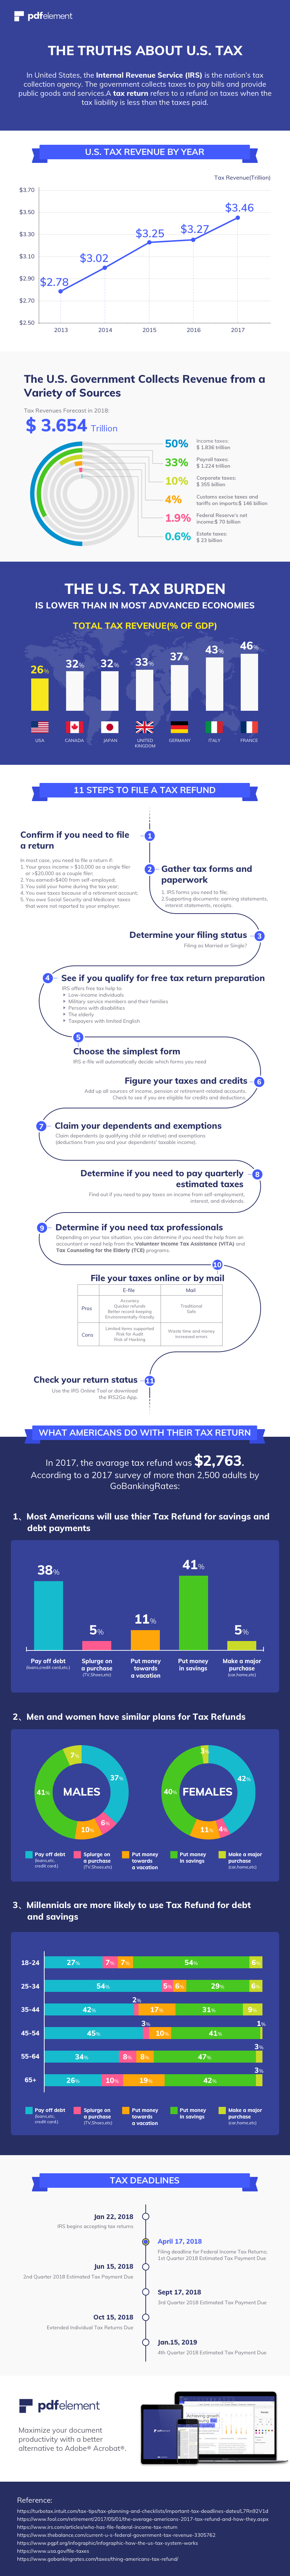 infographic truths about filing tax in US